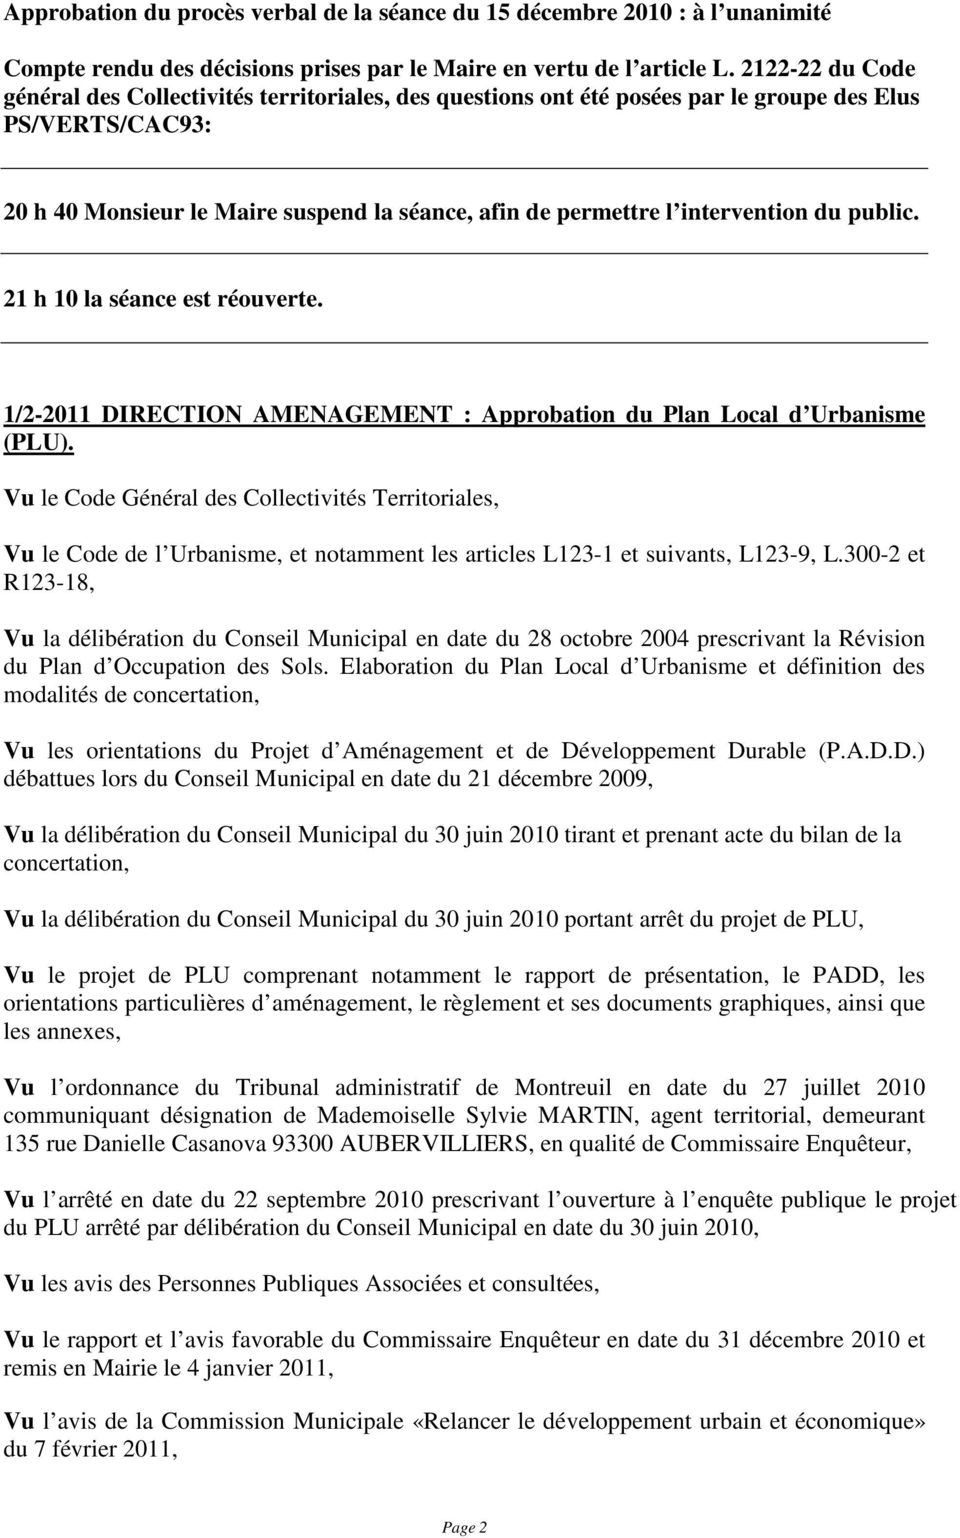 intervention du public. 21 h 10 la séance est réouverte. 1/2-2011 DIRECTION AMENAGEMENT : Approbation du Plan Local d Urbanisme (PLU).